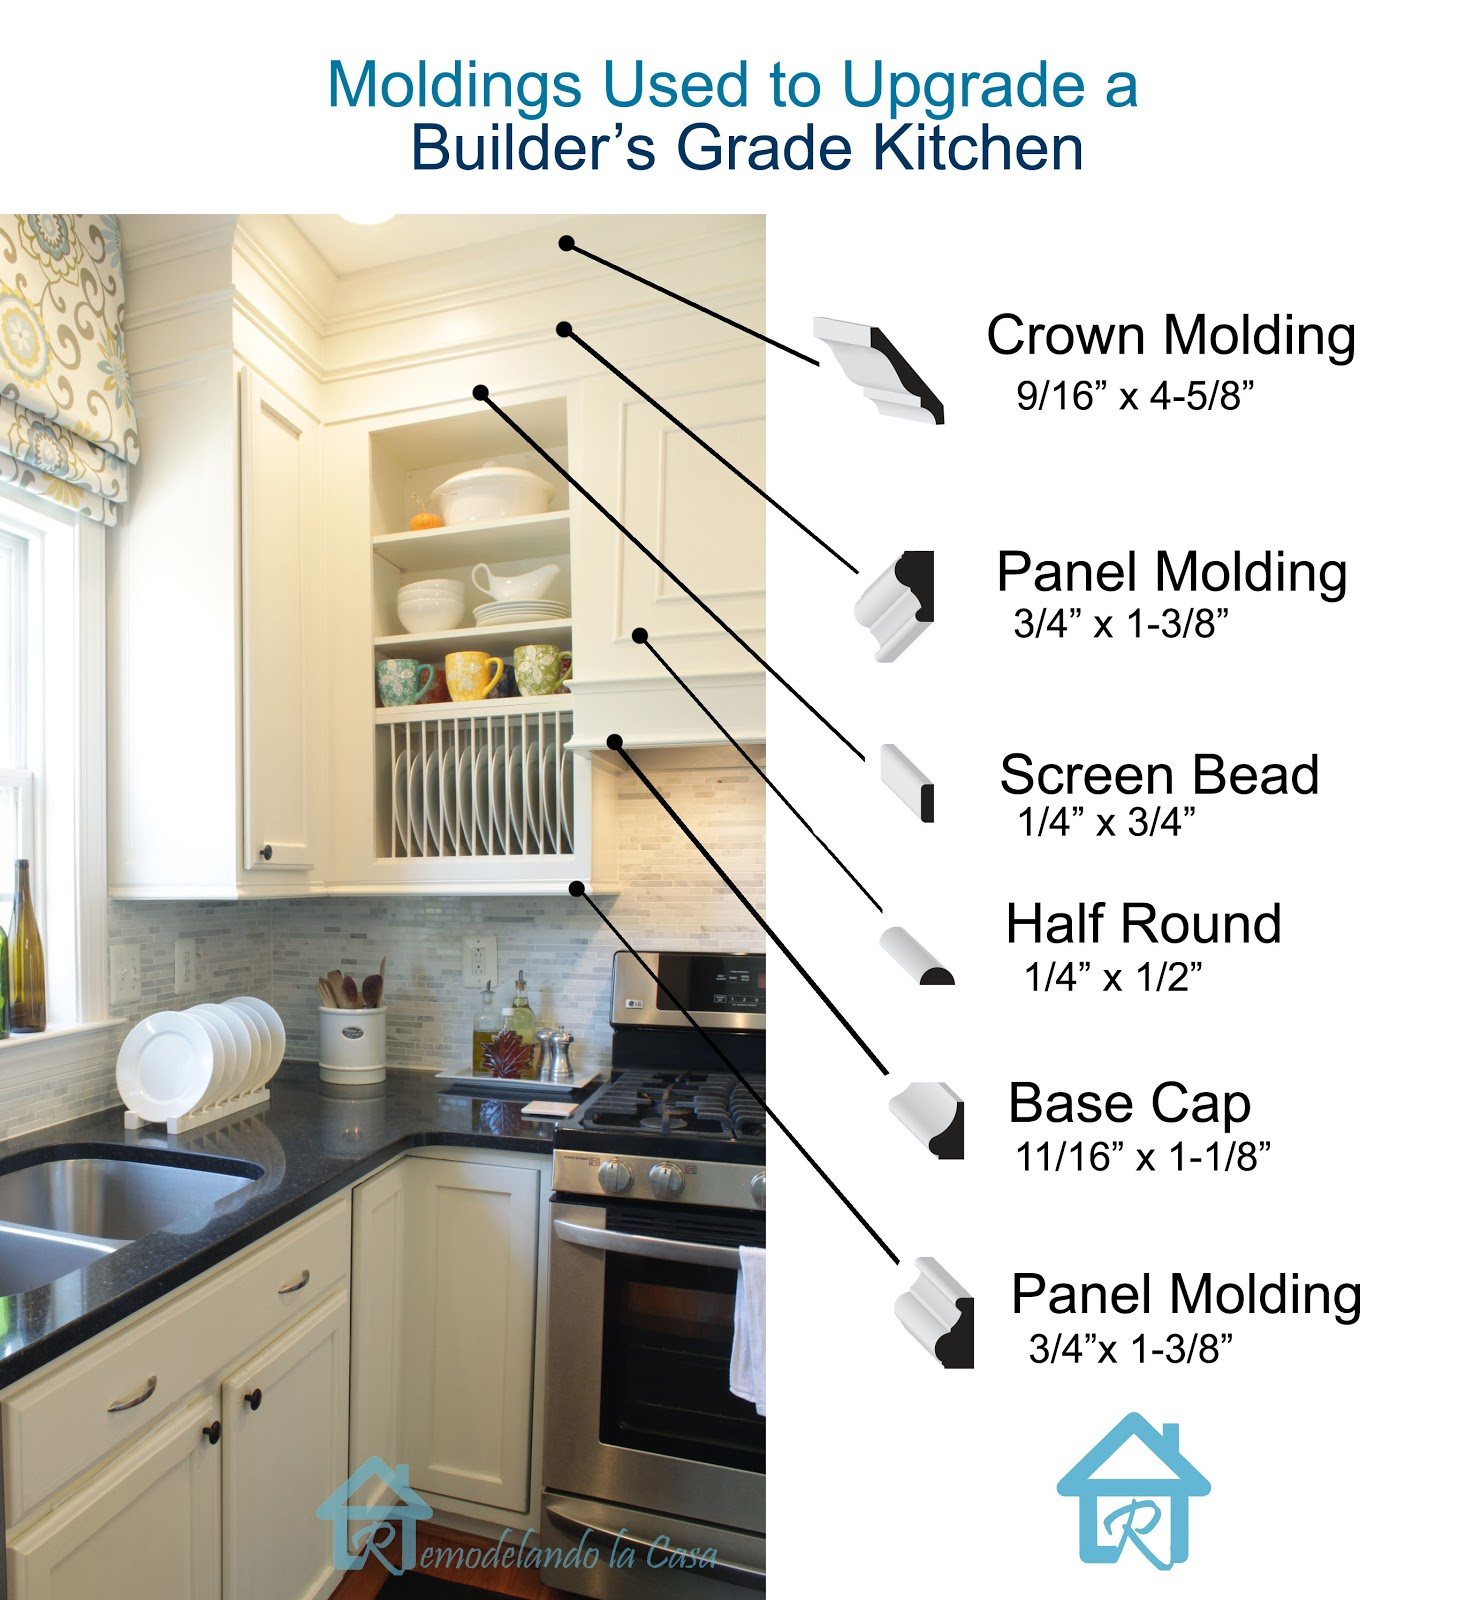 how to add moldings to kitchen cabinets remodelando la casa  adding moldings to your kitchen cabinets  rh   remodelandolacasa com